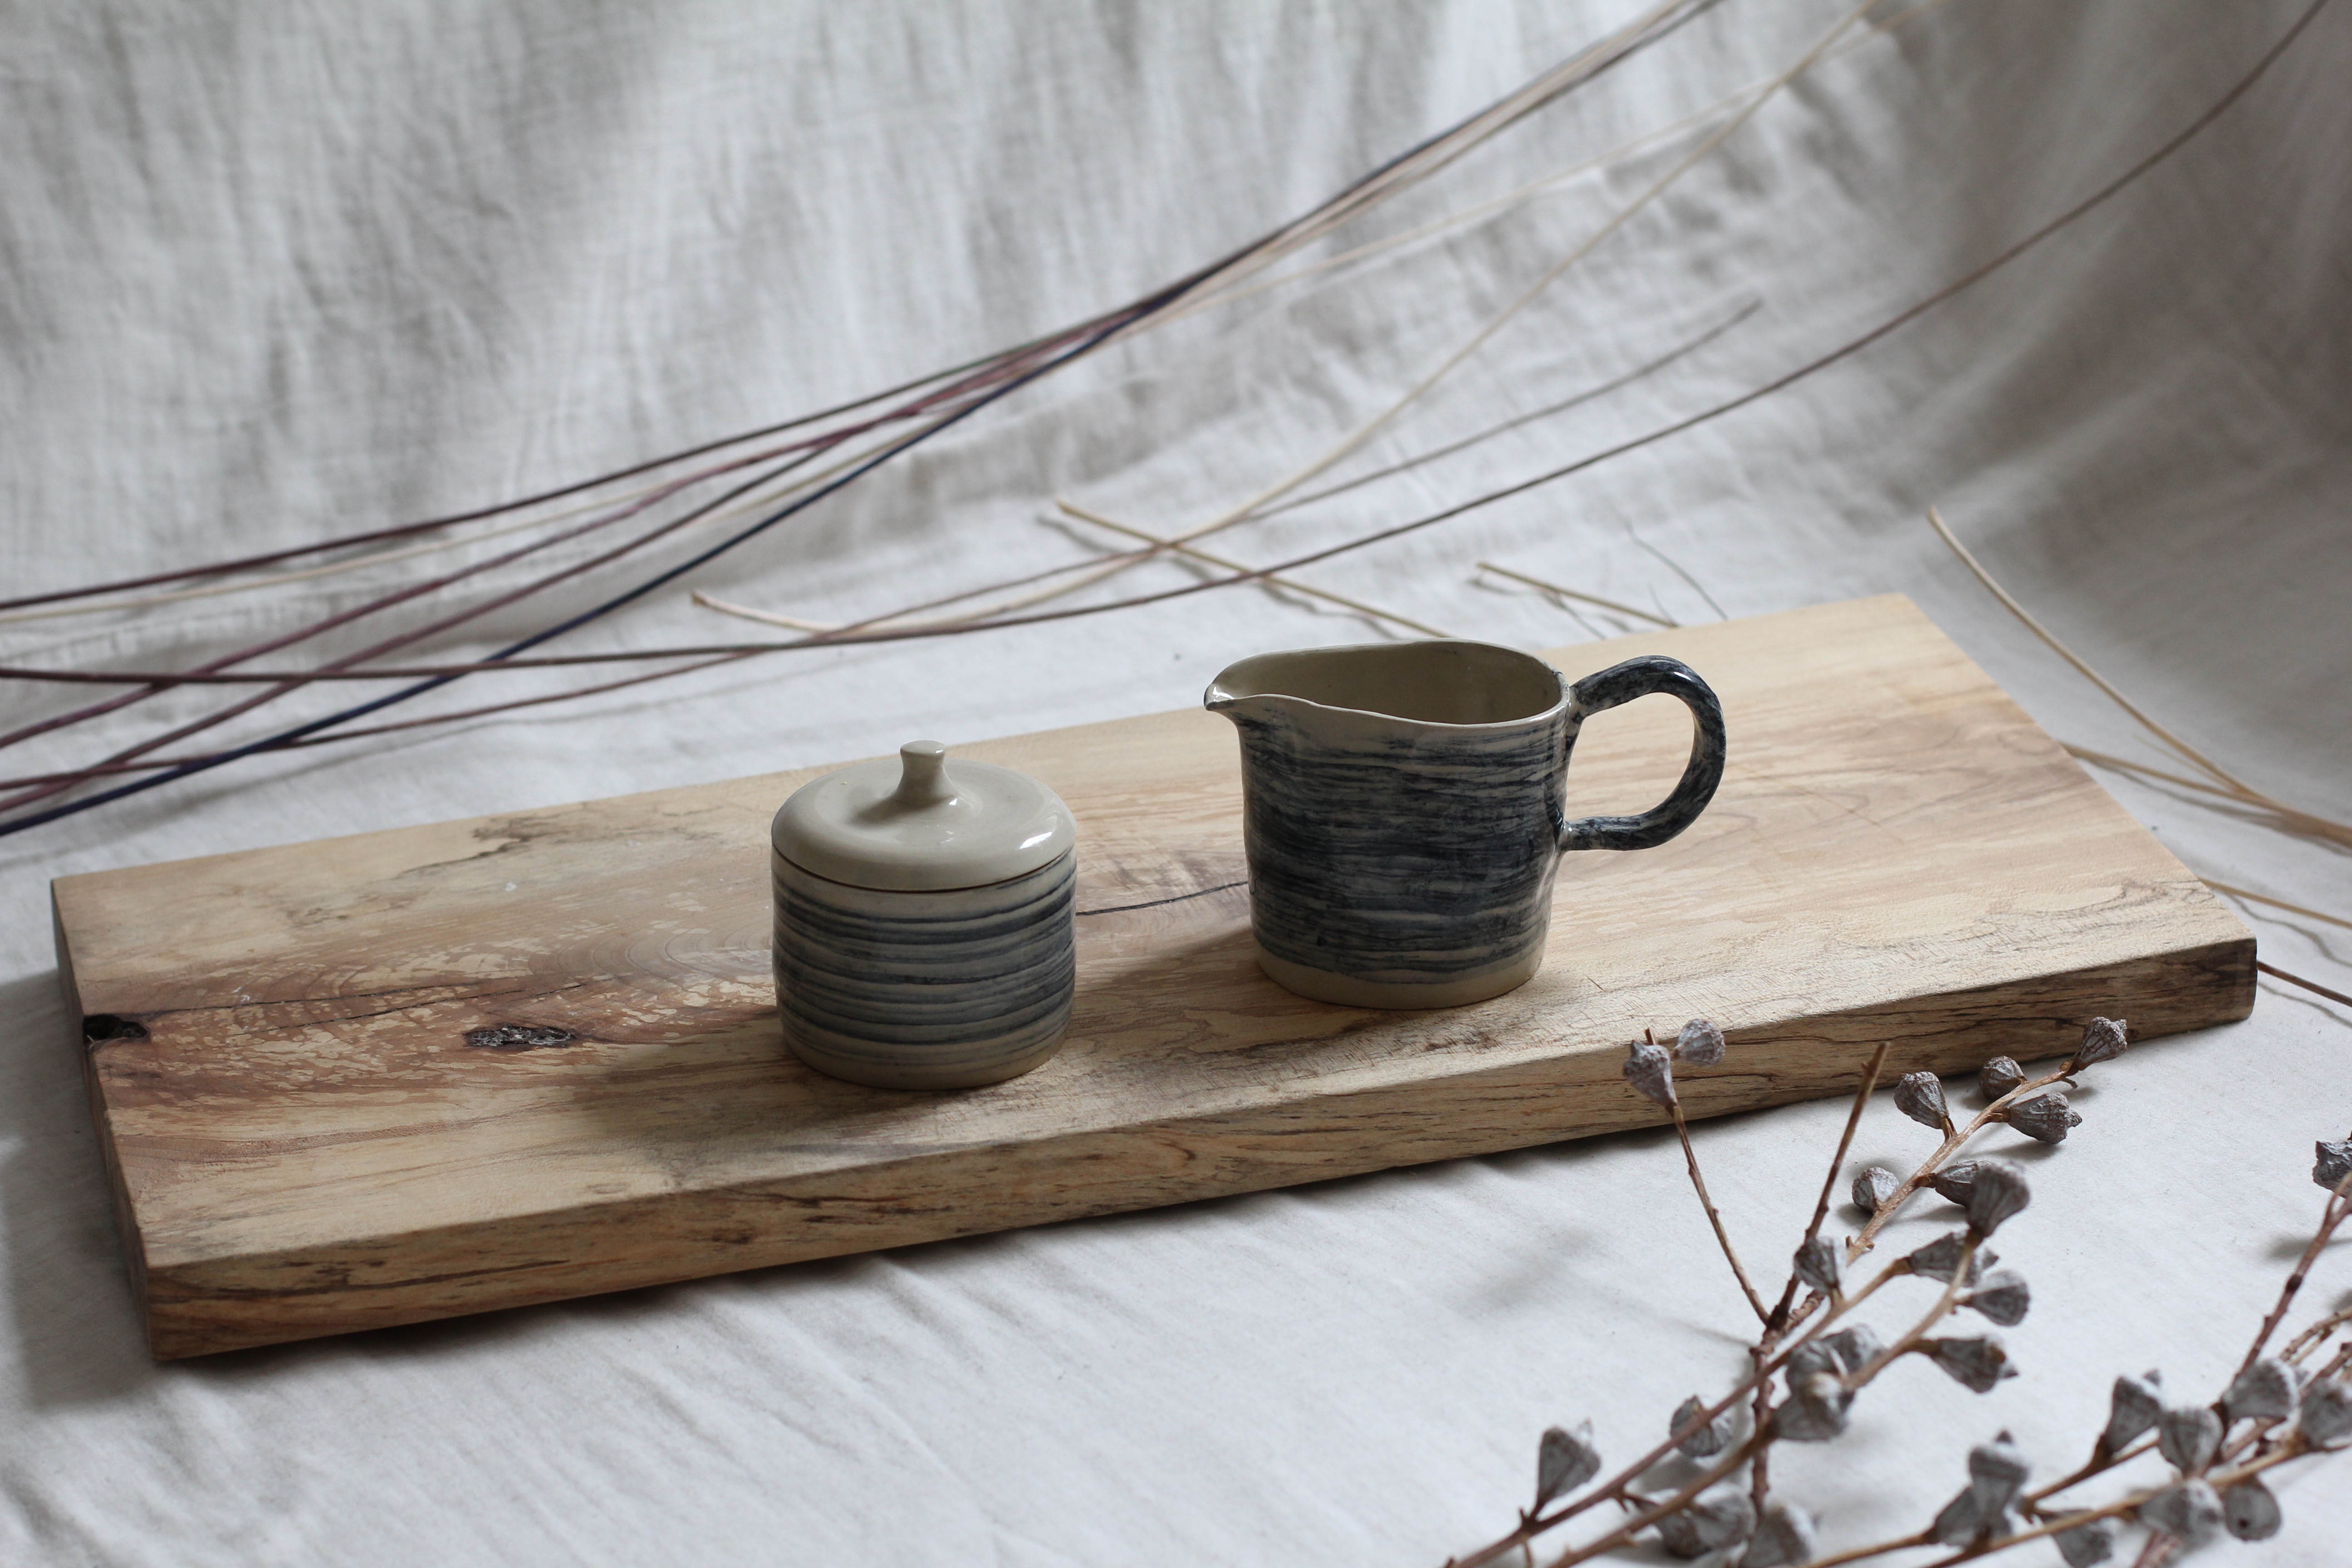 Tableware service with hand painted brush strokes by Daniela Franz - Creative Work - $i